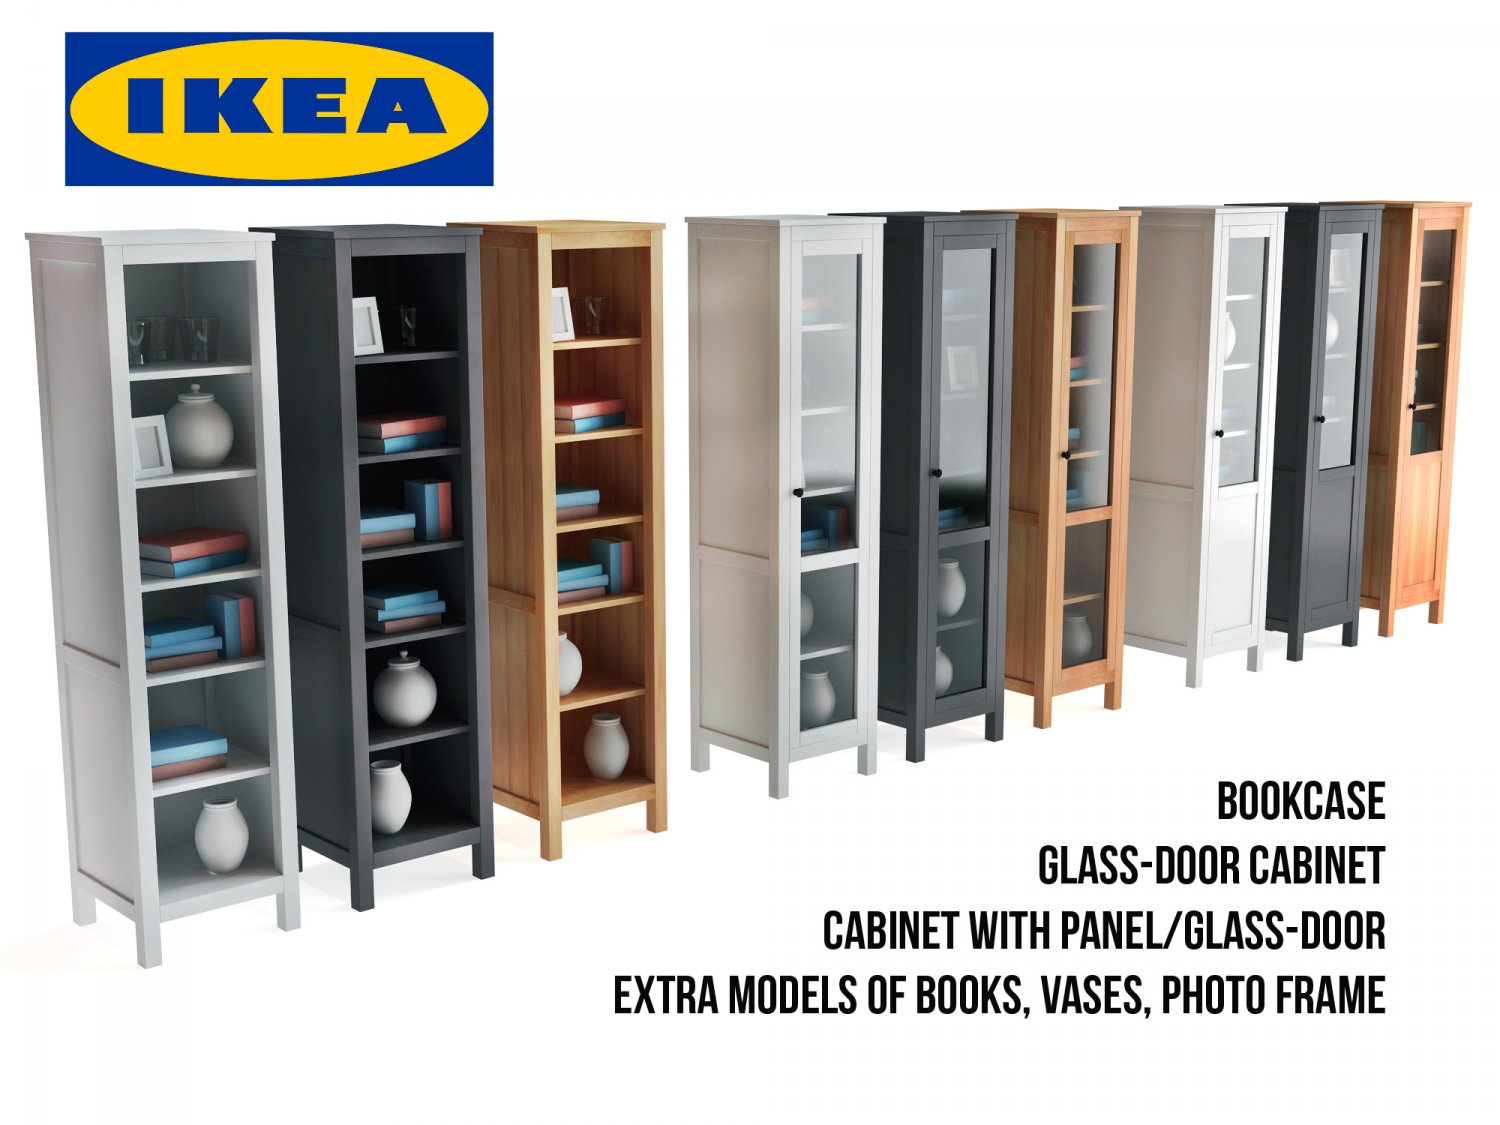 Ikea hemnes bookcase and glass door cabinet 3d model in household items 3dexport